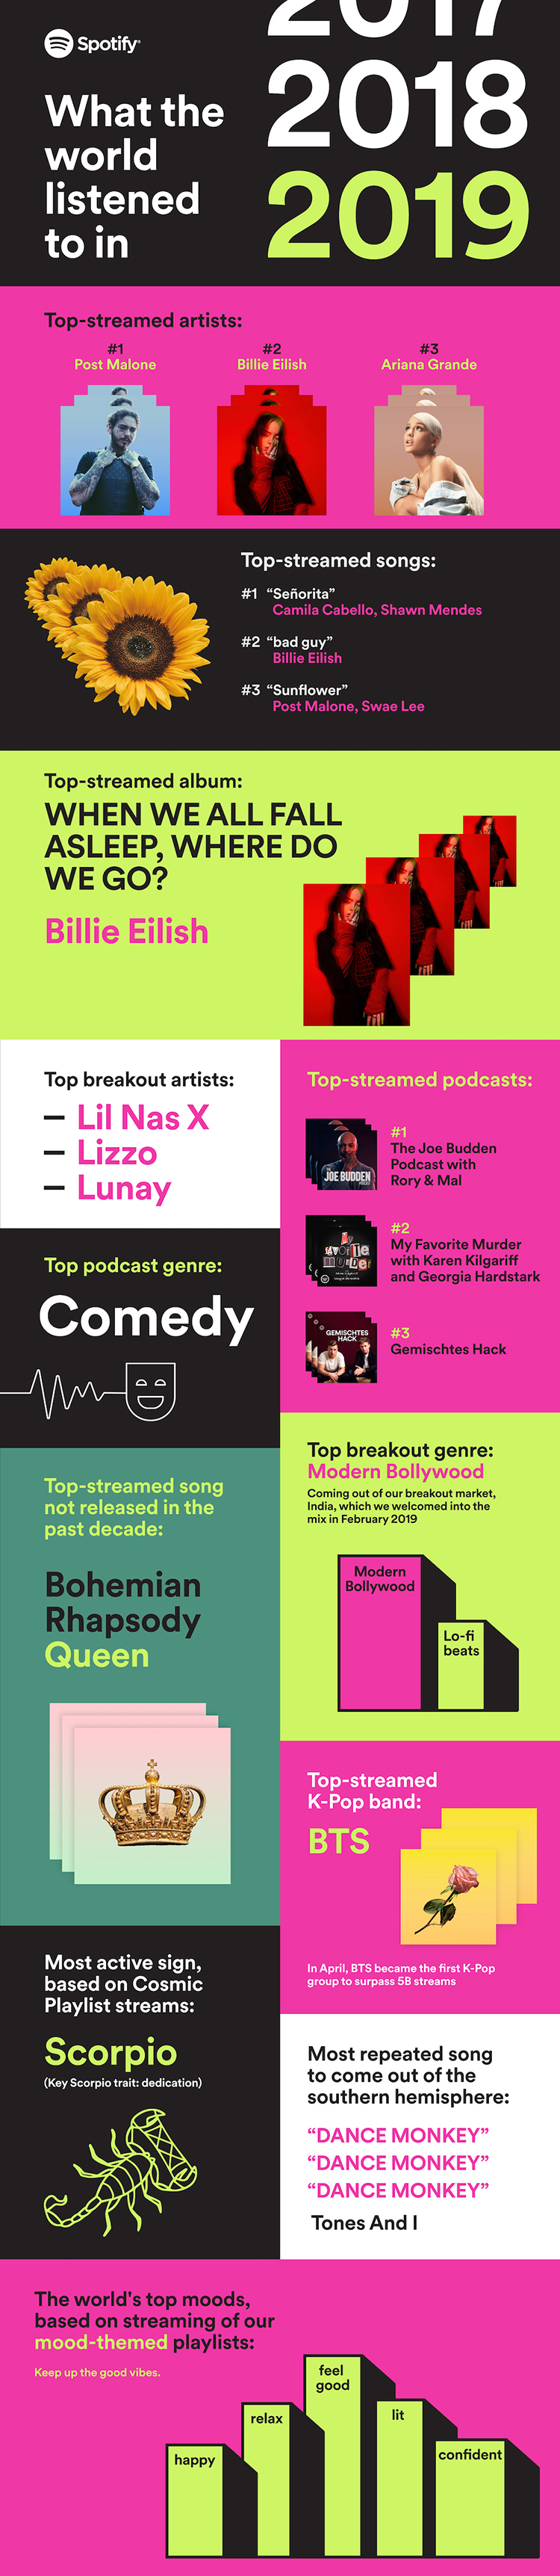 Most popular songs spotify 2018